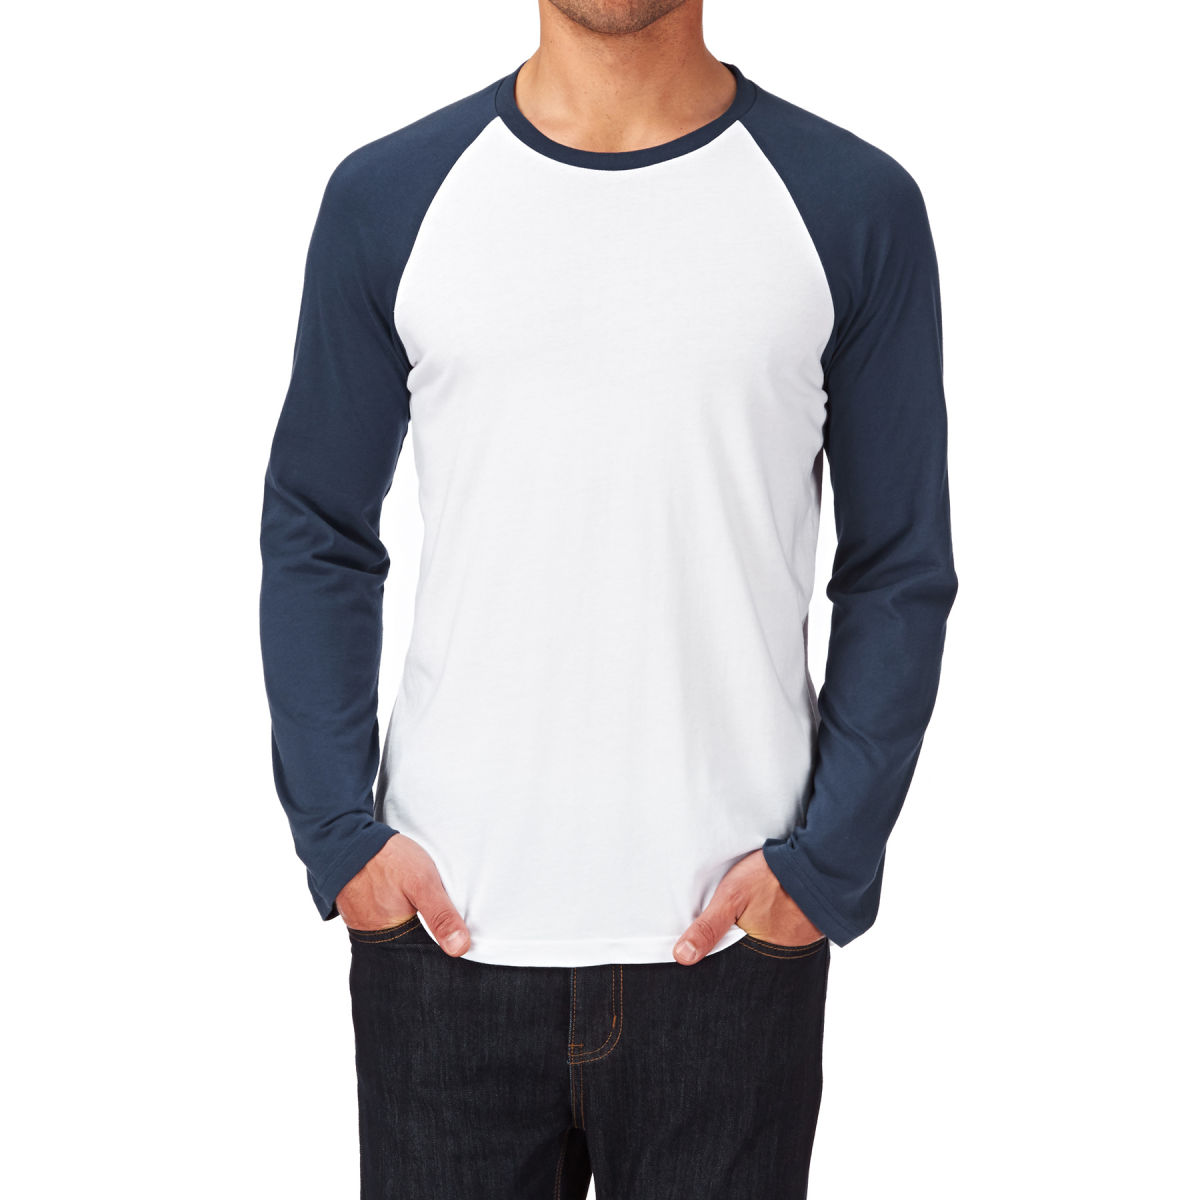 Find long sleeve t-shirts in printed and solid styles, made with the softest fabrics. Whether it's a striped long-sleeve tee or a simple white tee with a scallop hem, .